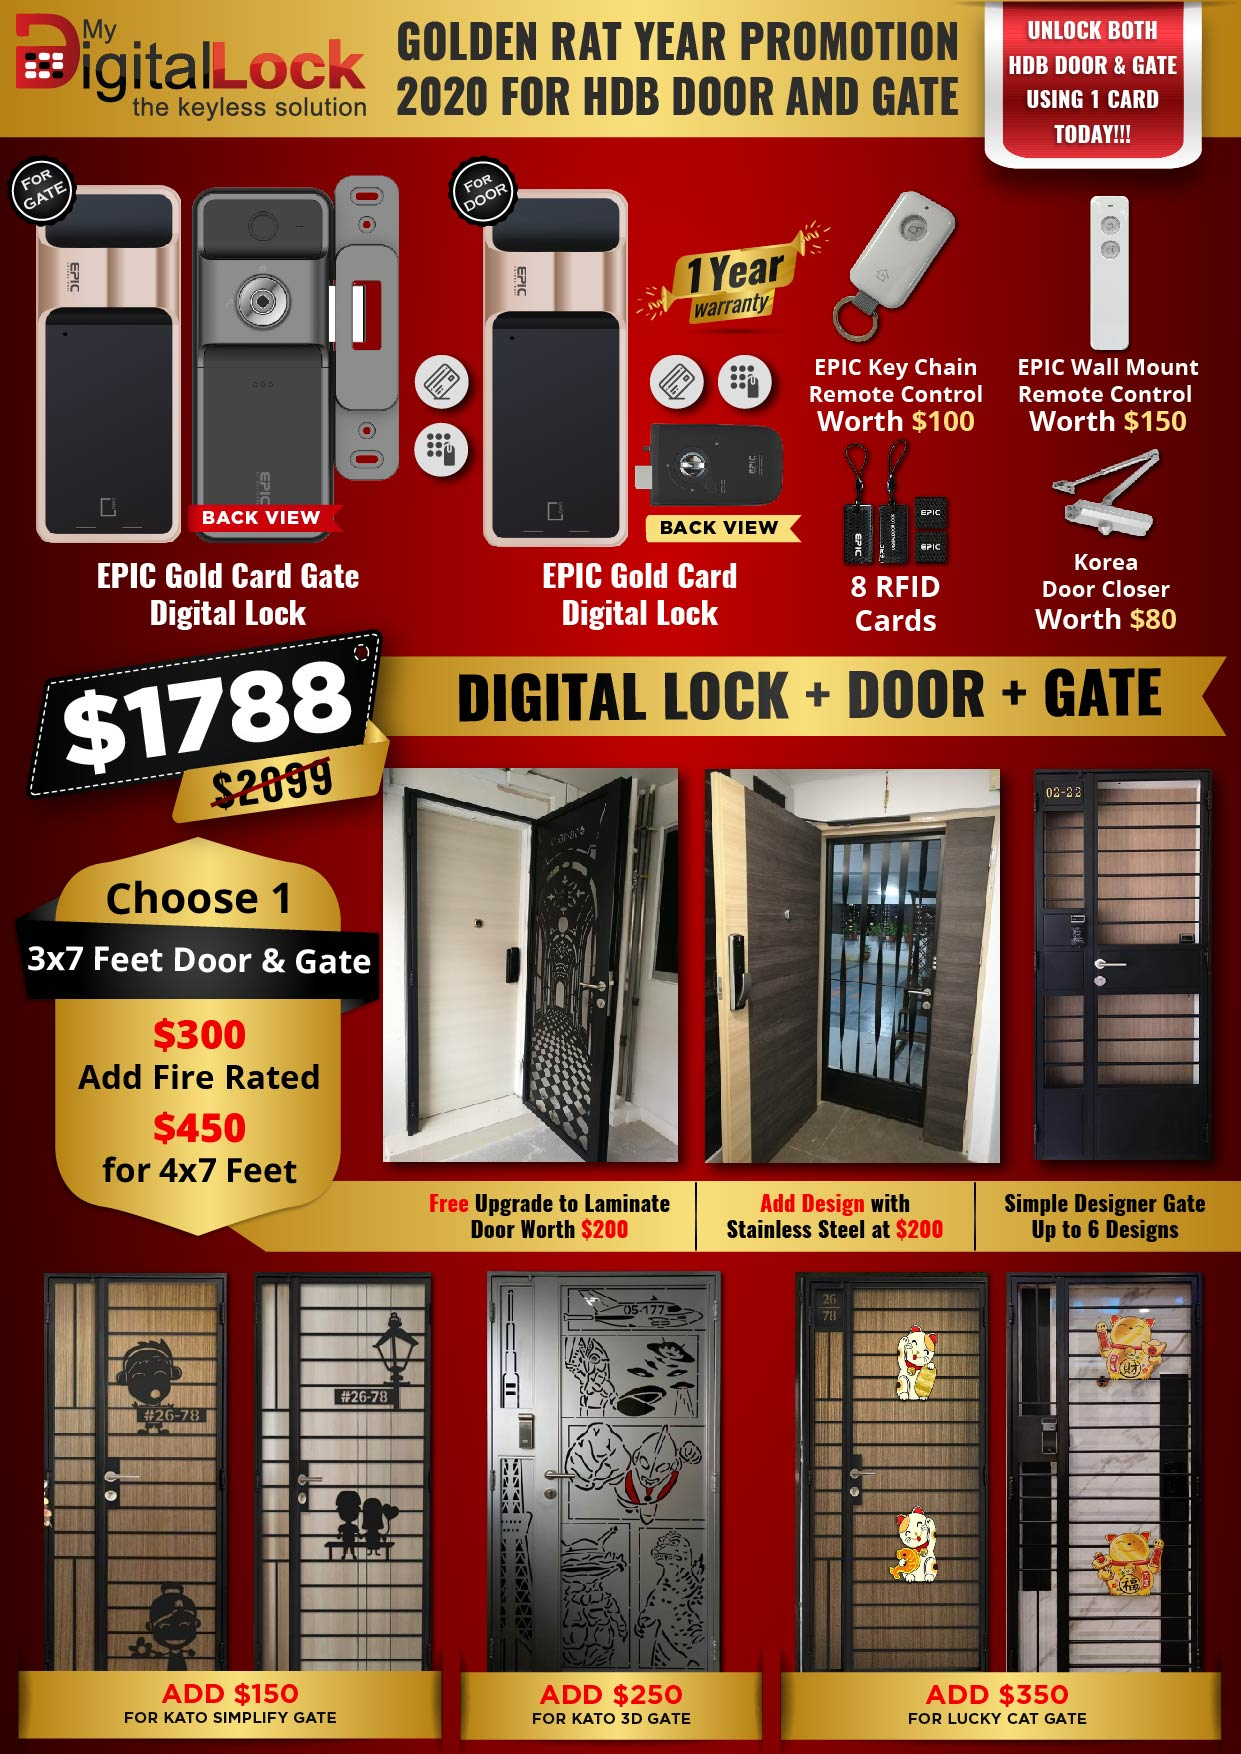 Golden Rat Year HDB Door and Gate Promotion with EPIC Gold Card Digital Lock